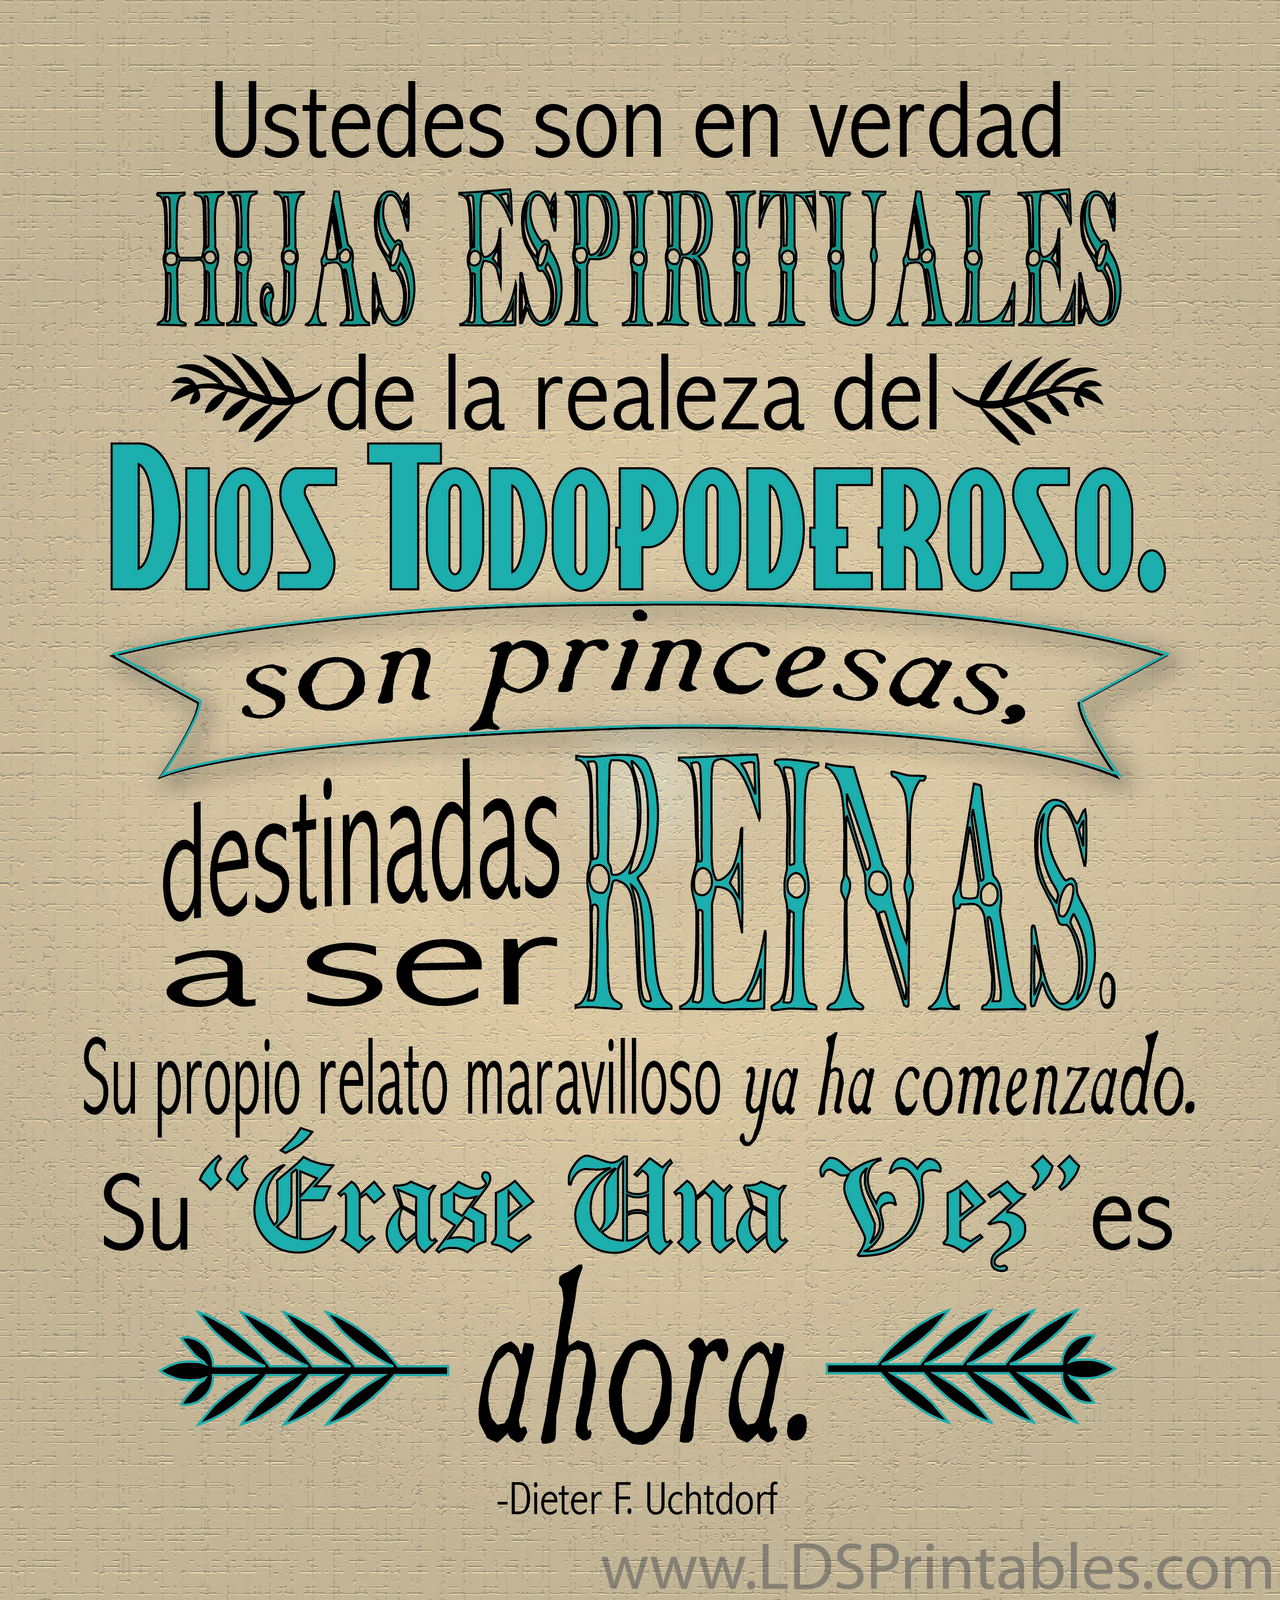 Quotes in Spanish About God Spanish About God QuotesQuotes About God In Spanish